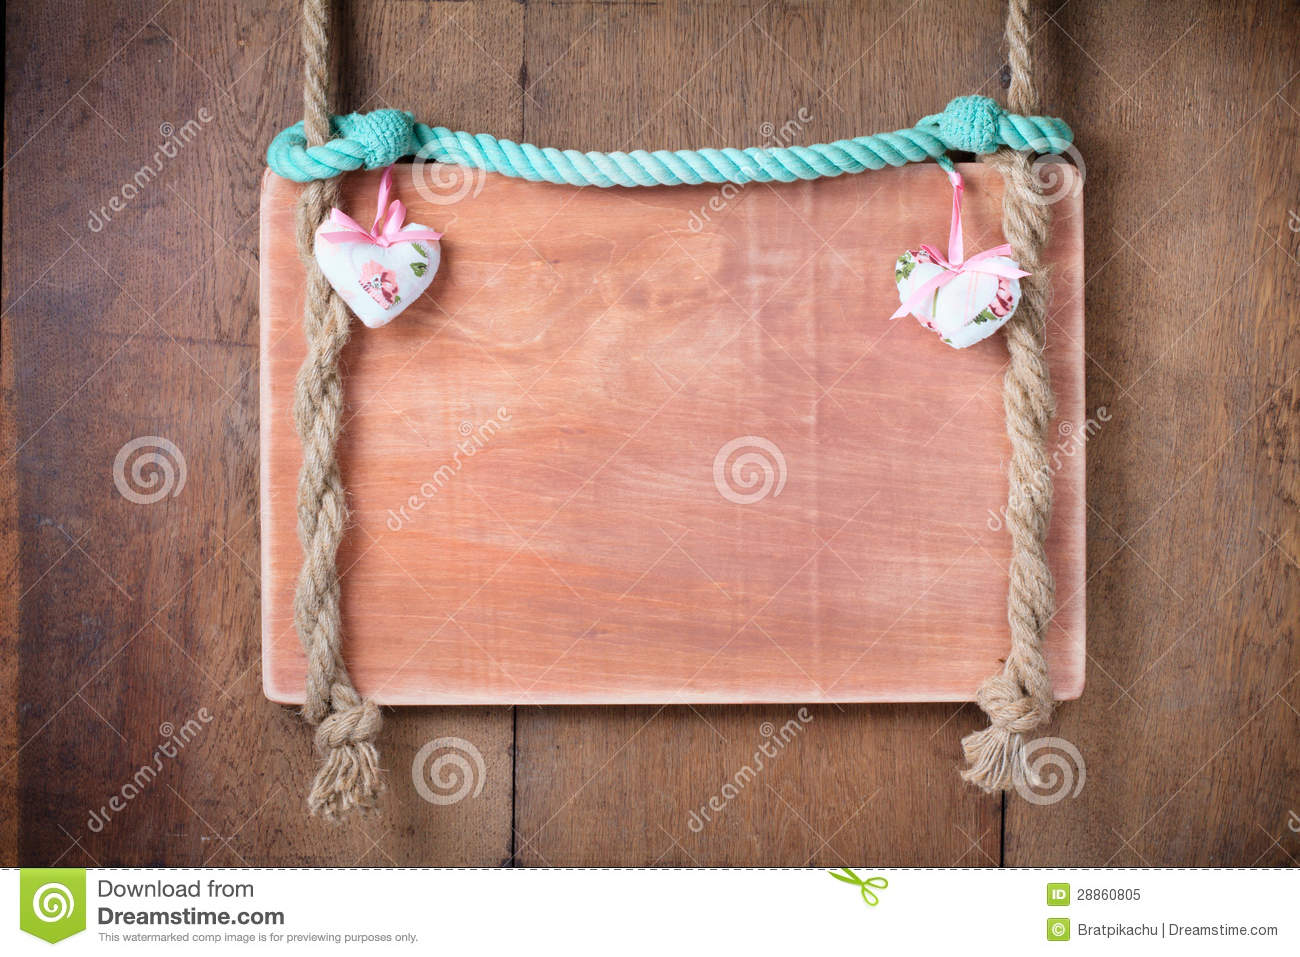 How Big Is A Cord Of Wood >> Vintage Valentine Frame Background With Hearts Hanging On Rope Royalty Free Stock Photo - Image ...